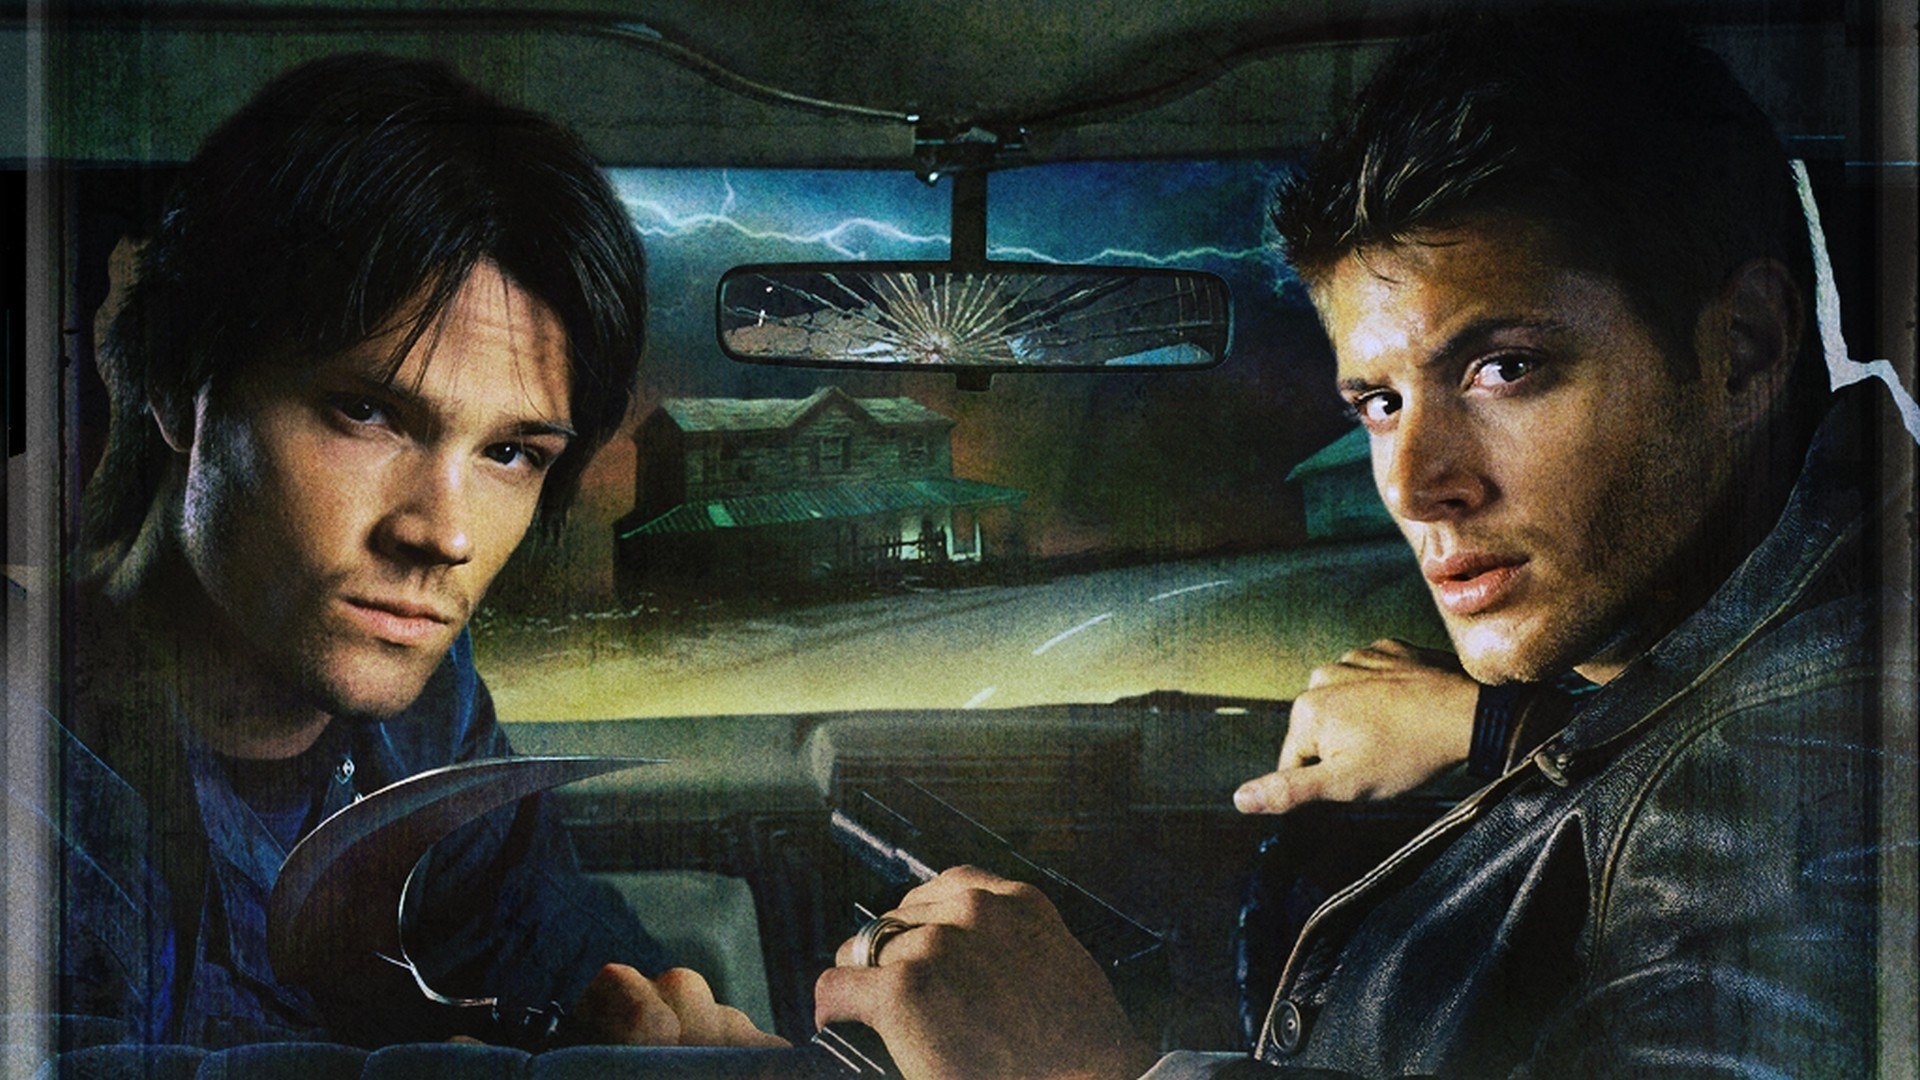 1920x1080 Sam and Dean Winchester - Supernatural wallpaper - 566096